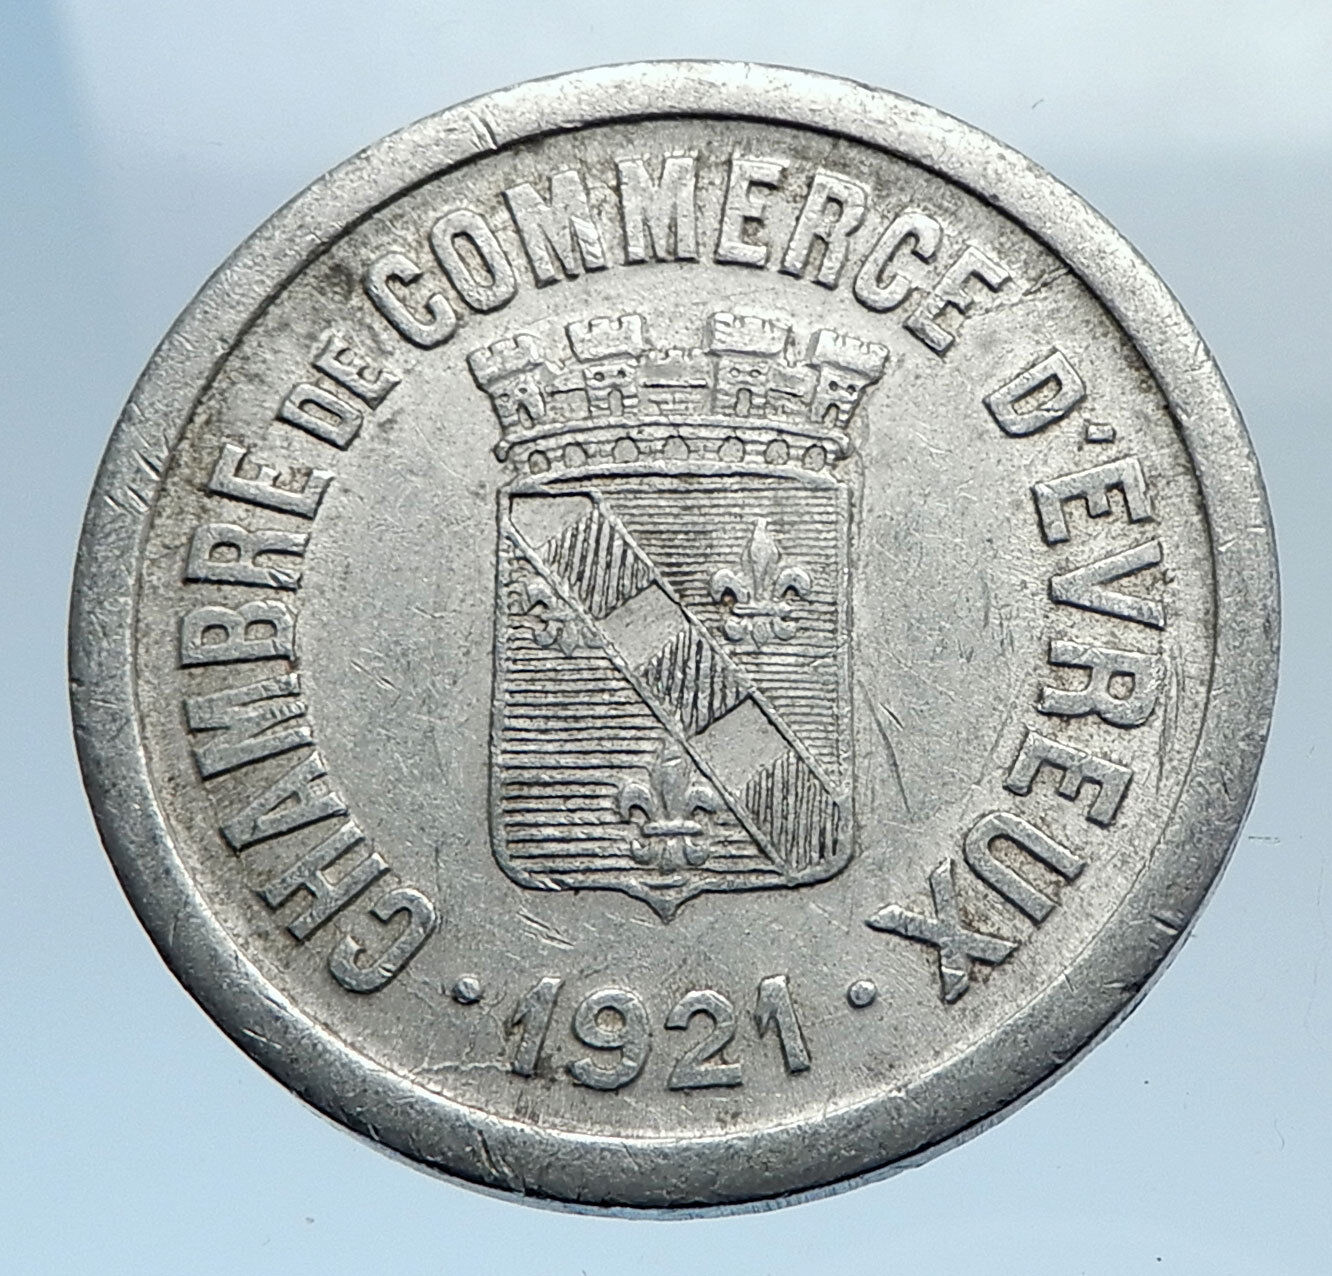 1921 FRANCE EVREUX AFTER WWI ALUMINUM 25 CENTIMES TRADE TOKEN FRENCH COIN I74167